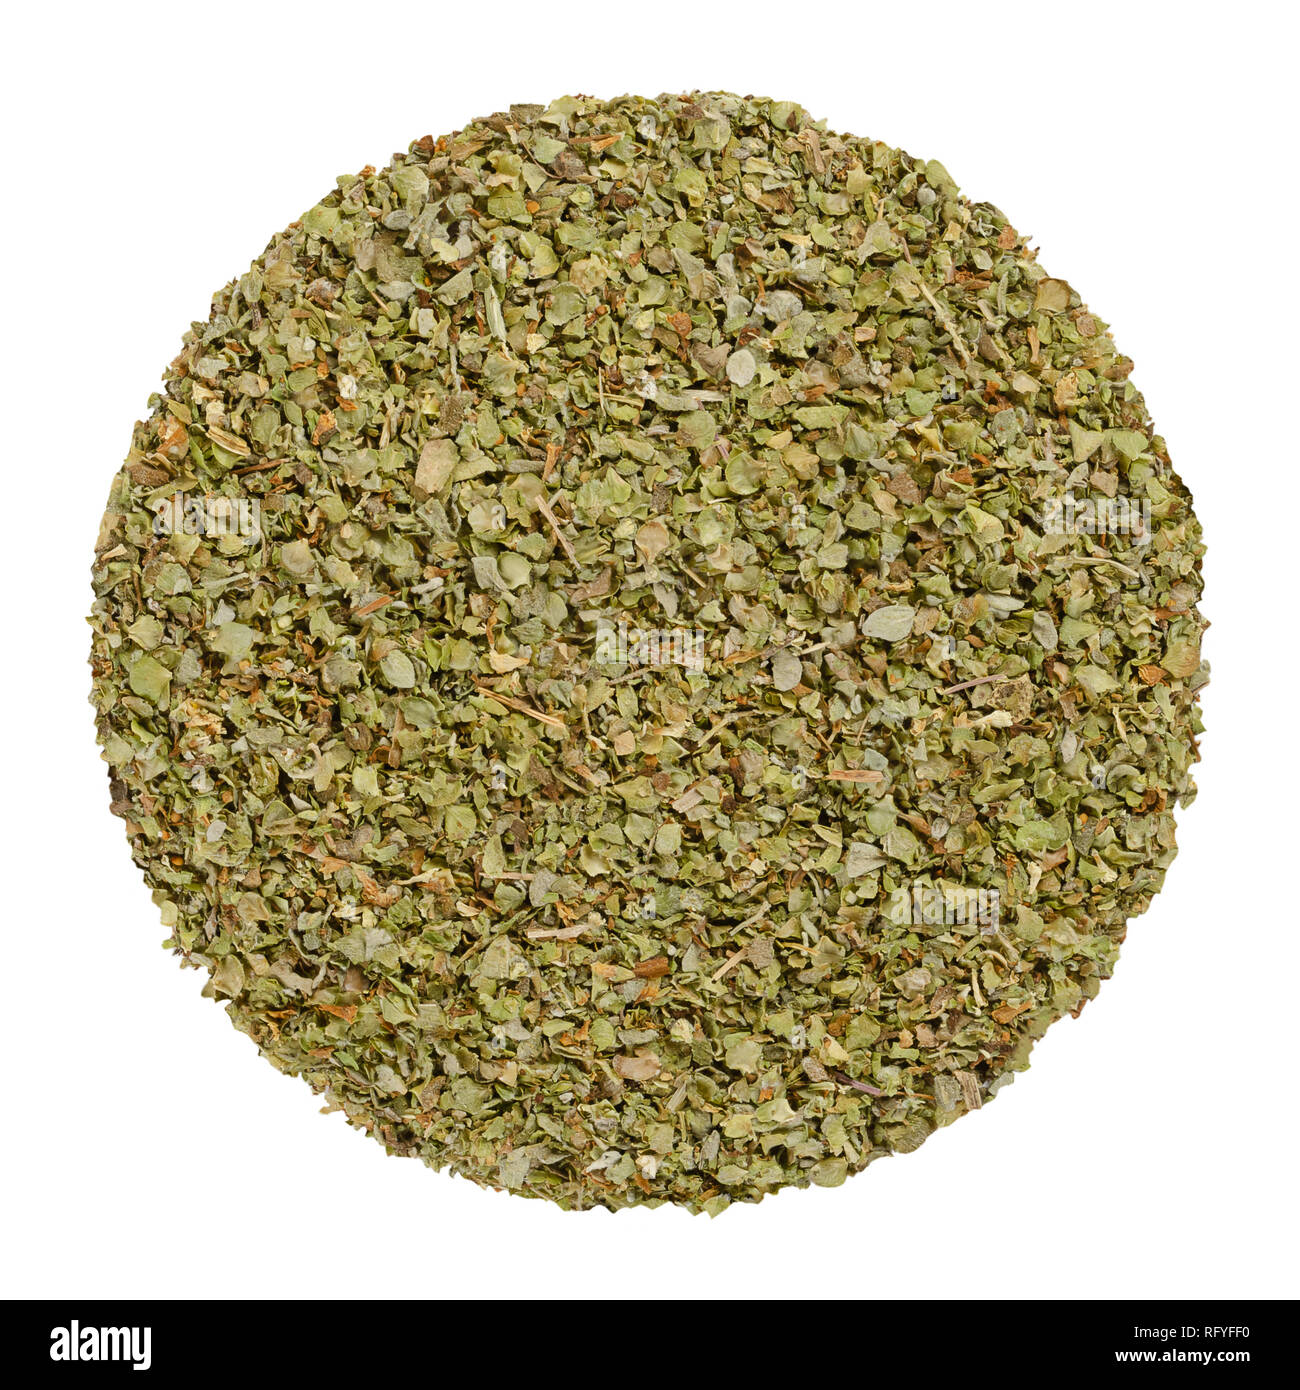 Dried marjoram, herb circle from above, isolated, over white. Disc made of Origanum majorana, also sweet, knotted or pot marjoram. Green herb. - Stock Image